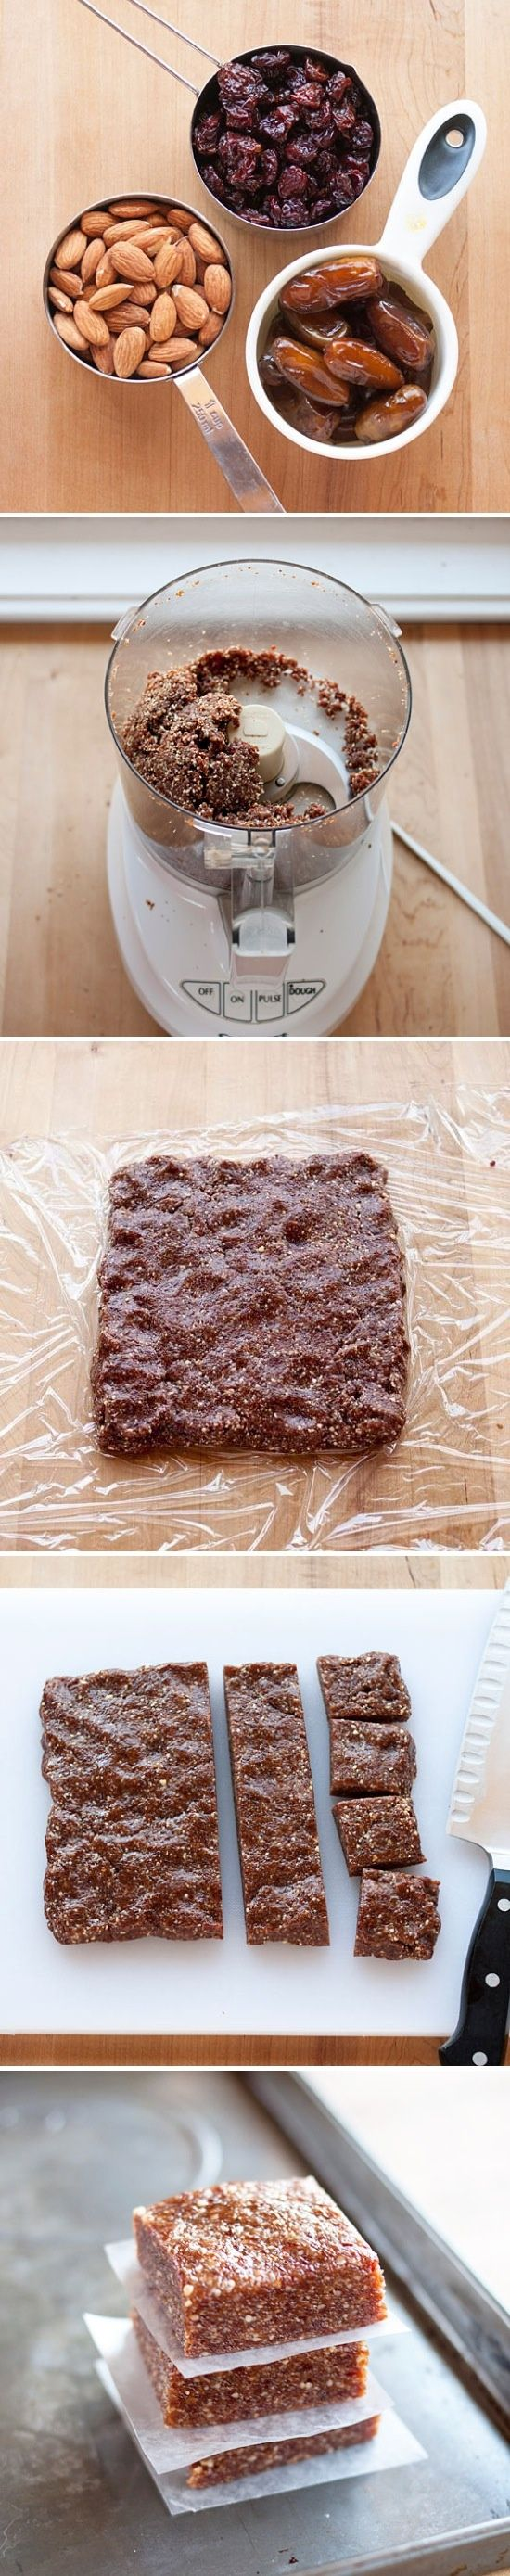 3 Ingredient Energy Bars - Can't wait to try these. Dates, cranberries, and almonds.